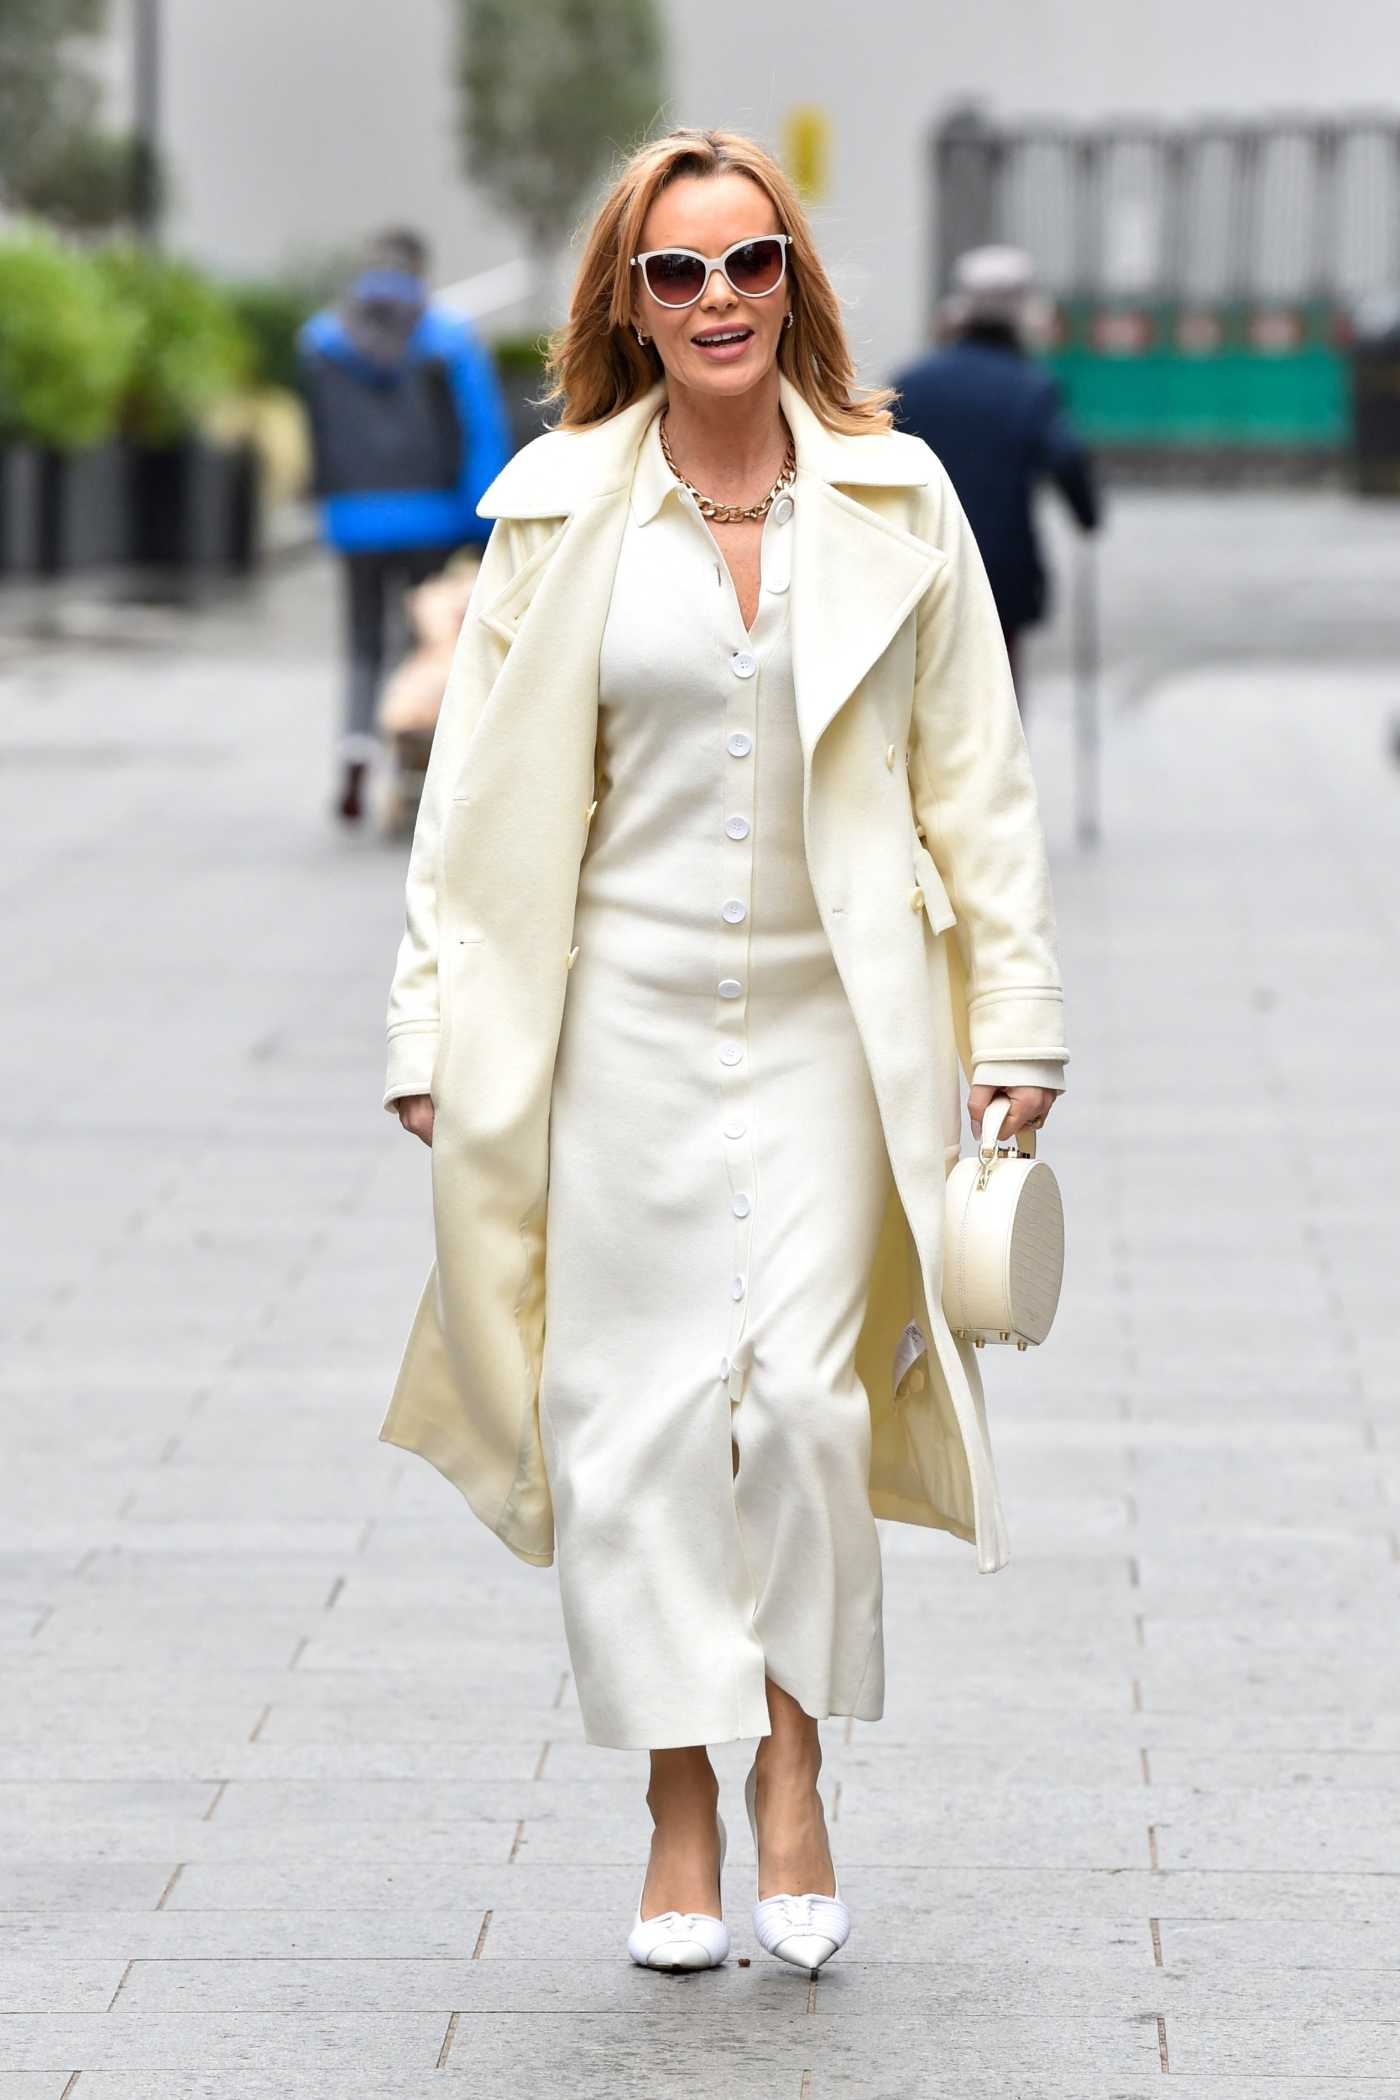 Amanda Holden in a White Outfit Leaves the Global Studios in London 03/18/2021